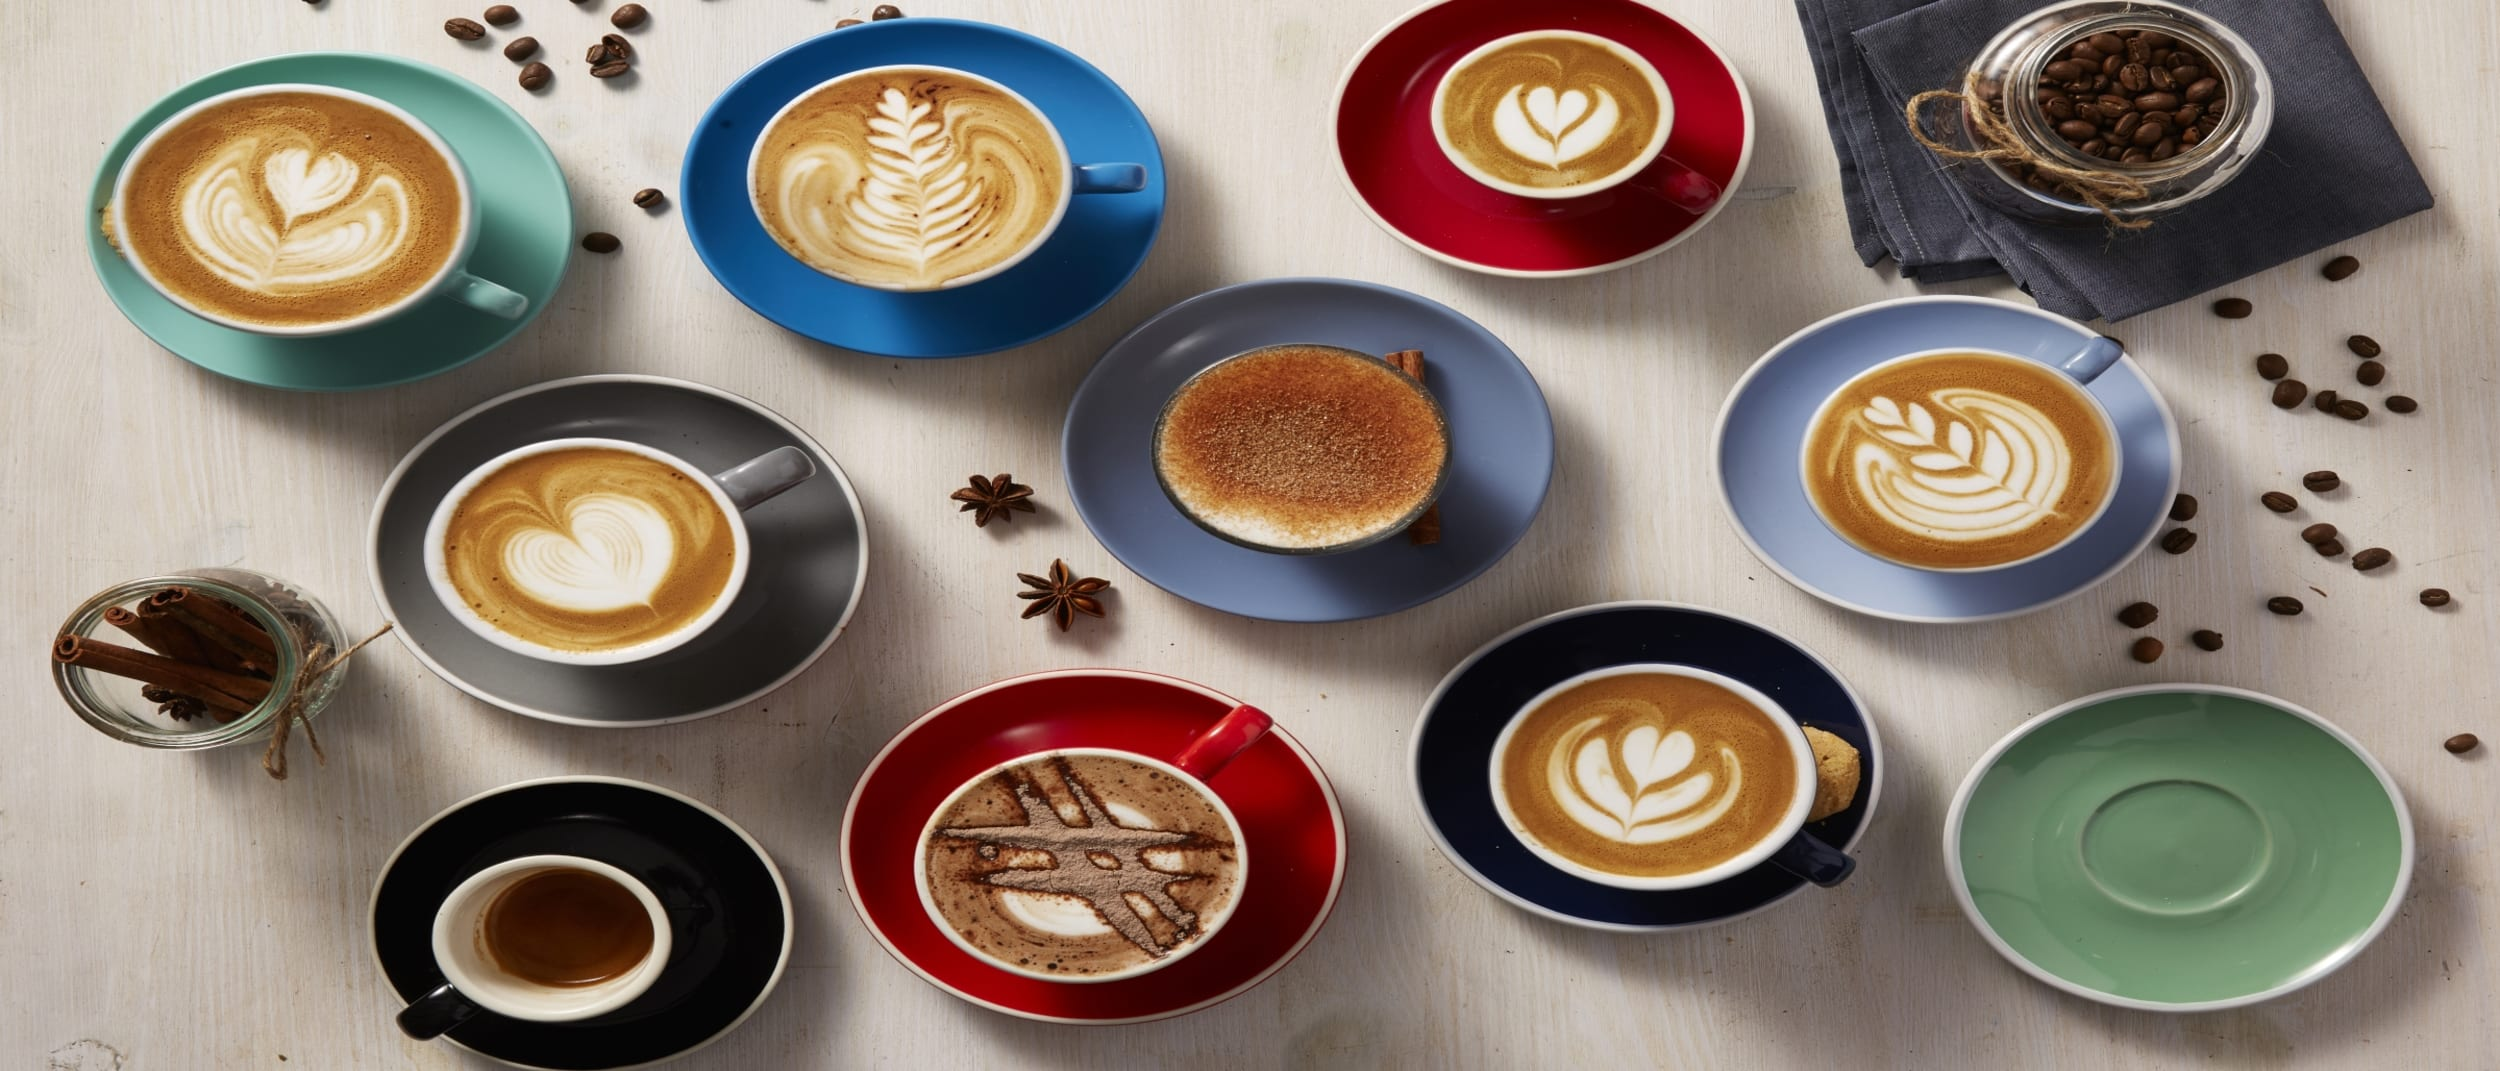 Jamaica Blue: half price coffees after 2pm on Tuesdays